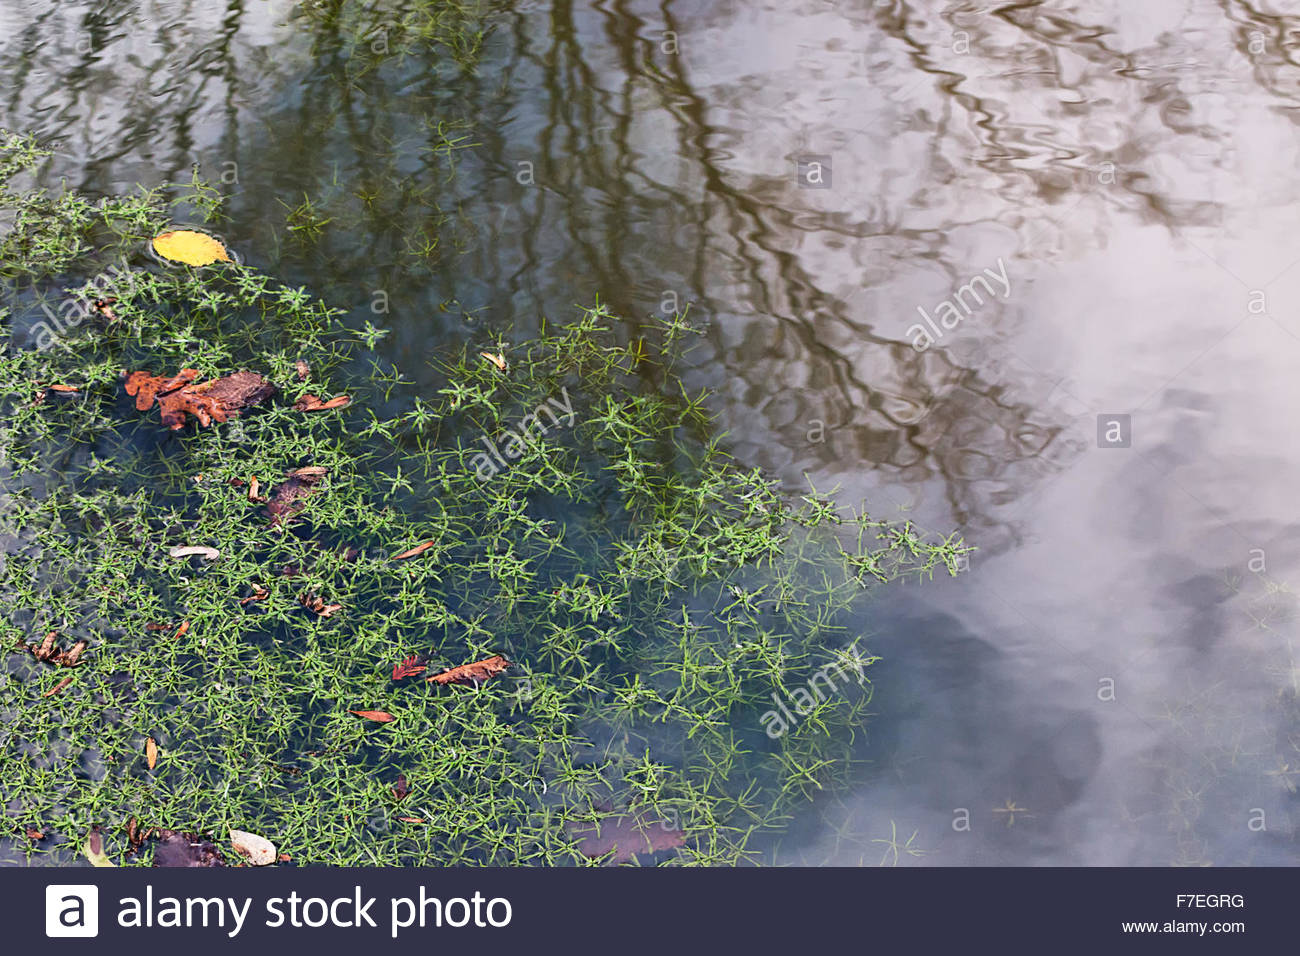 Pond weeds reflection - Stock Image